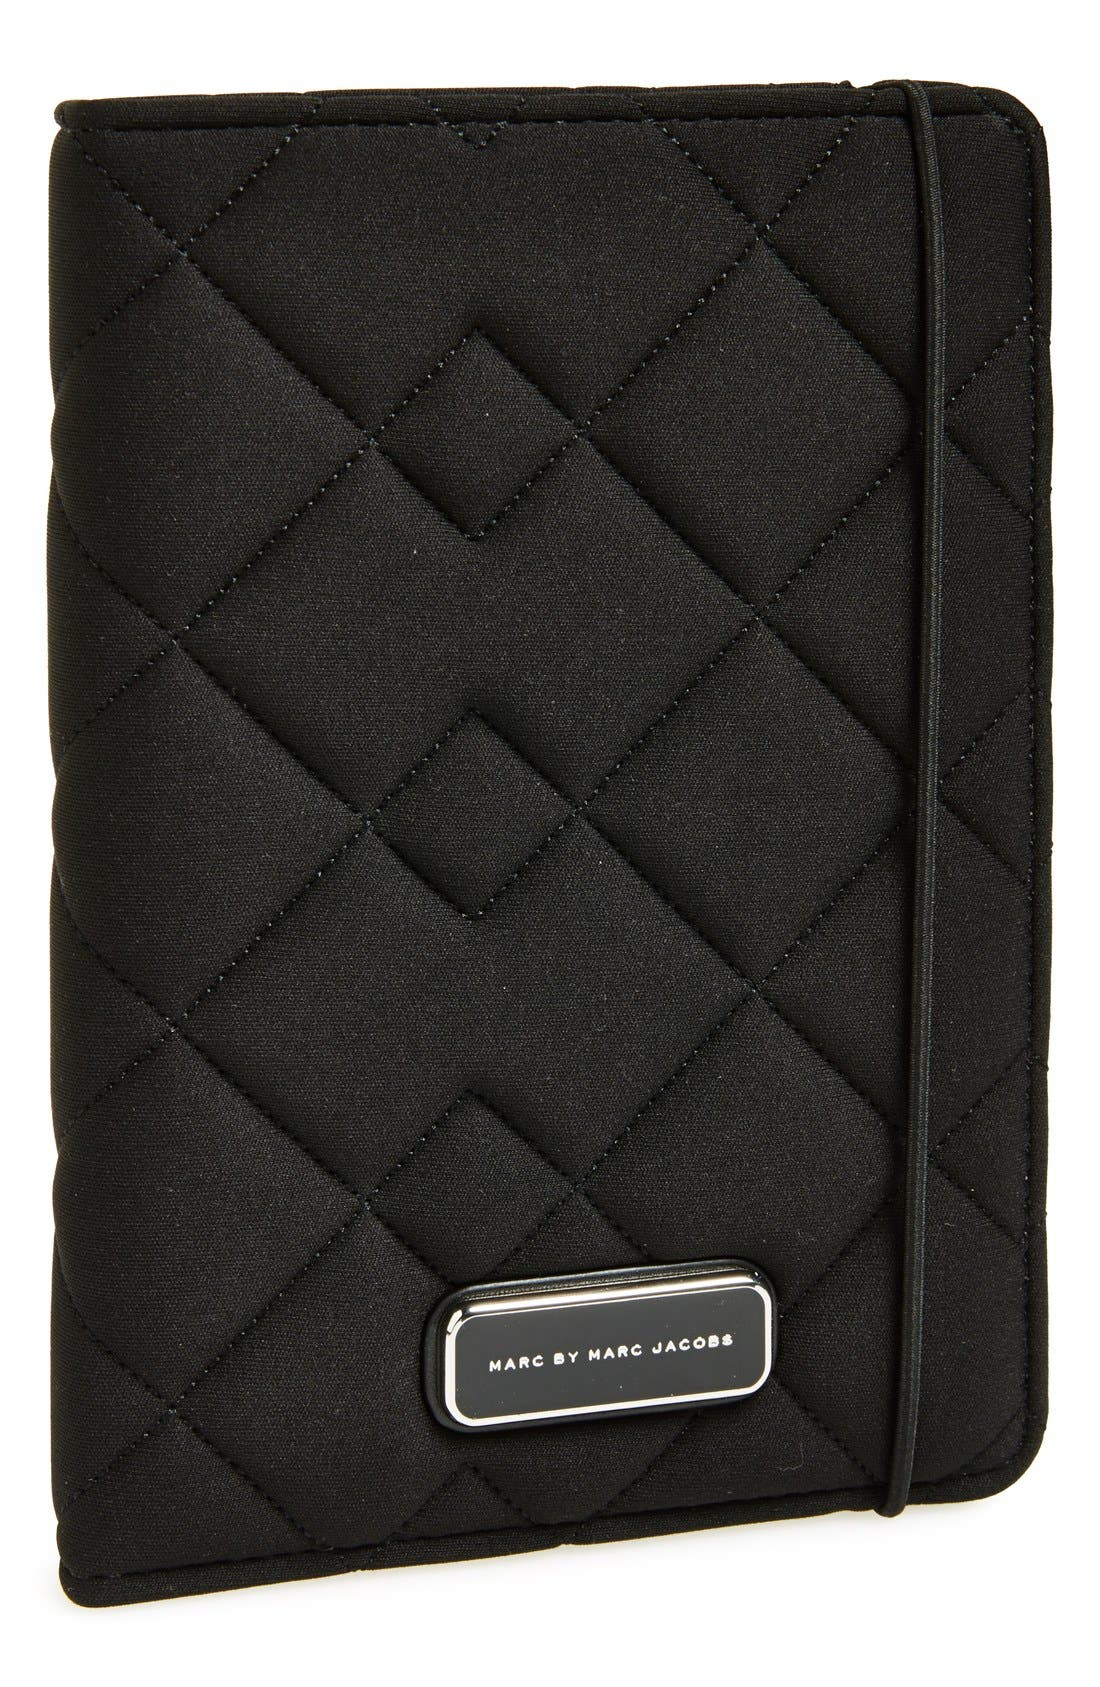 Alternate Image 1 Selected - MARC BY MARC JACOBS 'Crosby' iPad mini Tablet Case